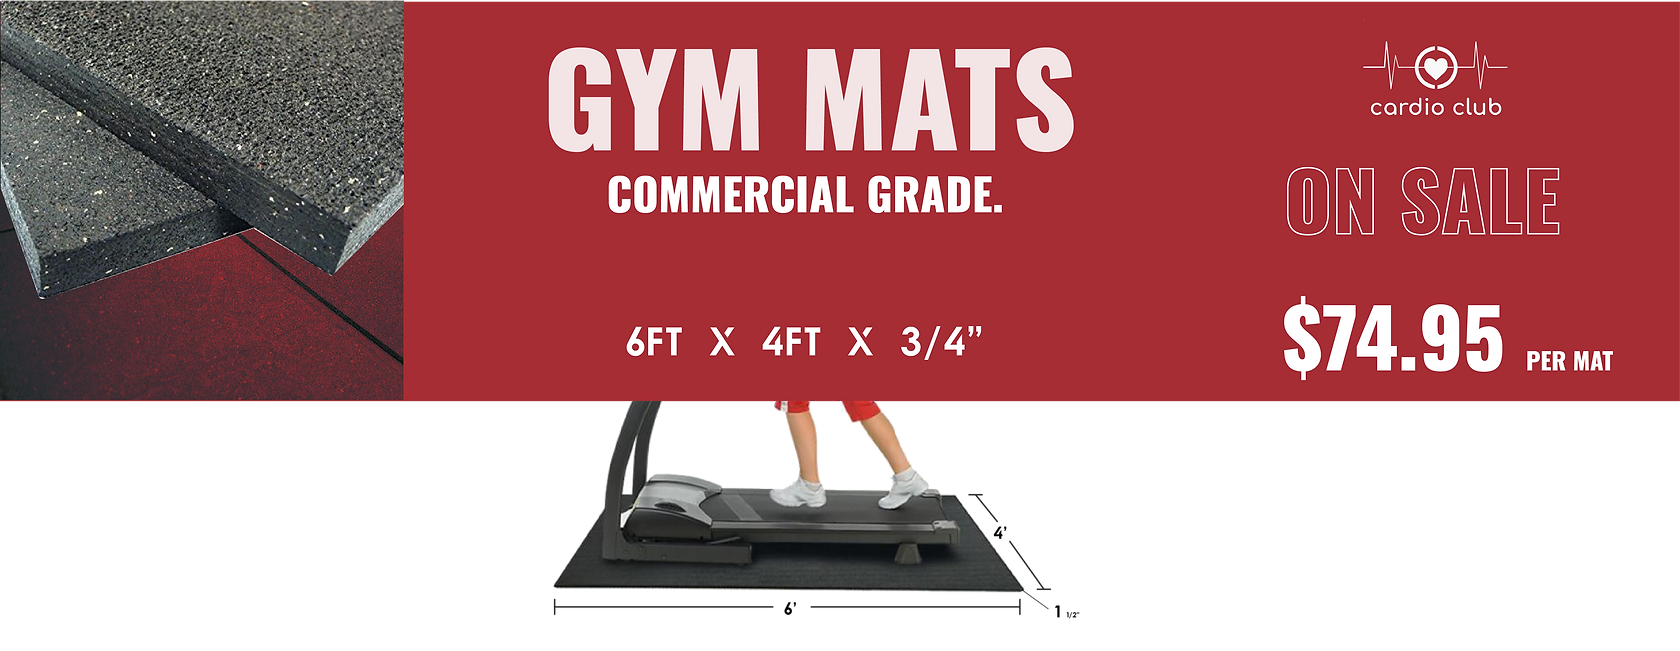 GYM MAT AD SALE-01.png